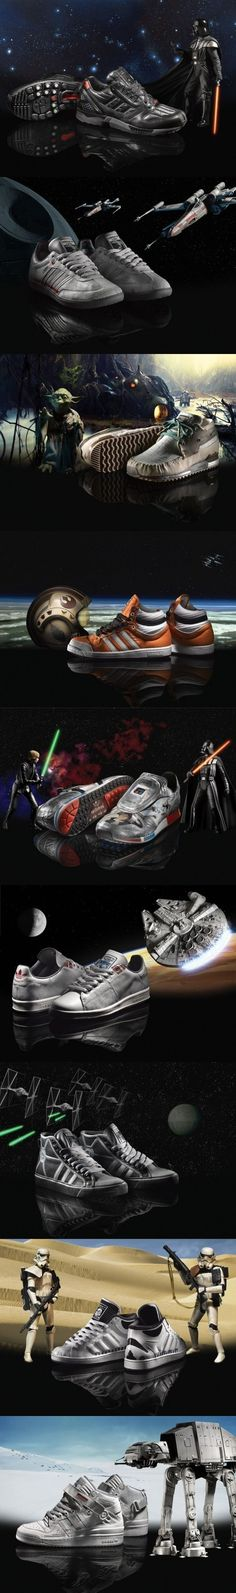 Which pair of Adidas Star Wars shoes would you buy (if you could)?